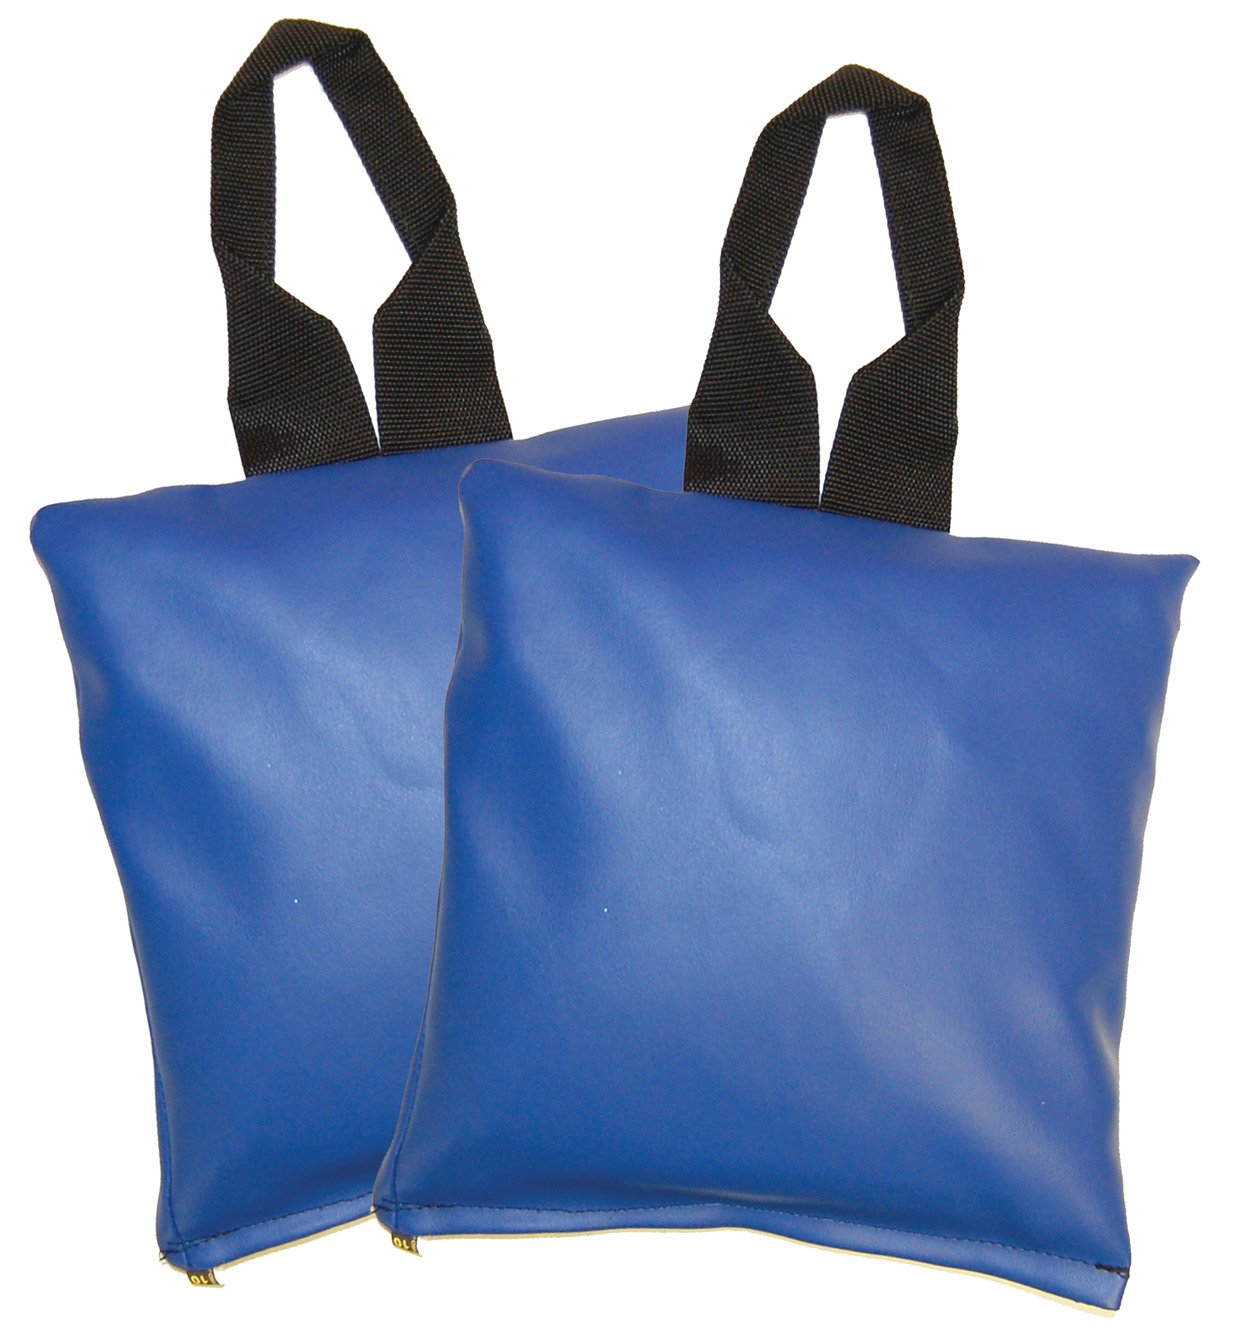 PDC Healthcare SB-729 Position Aid, 10 lb Sand Bag, Vinyl, 11'' x 11'', Blue (Pack of 2)